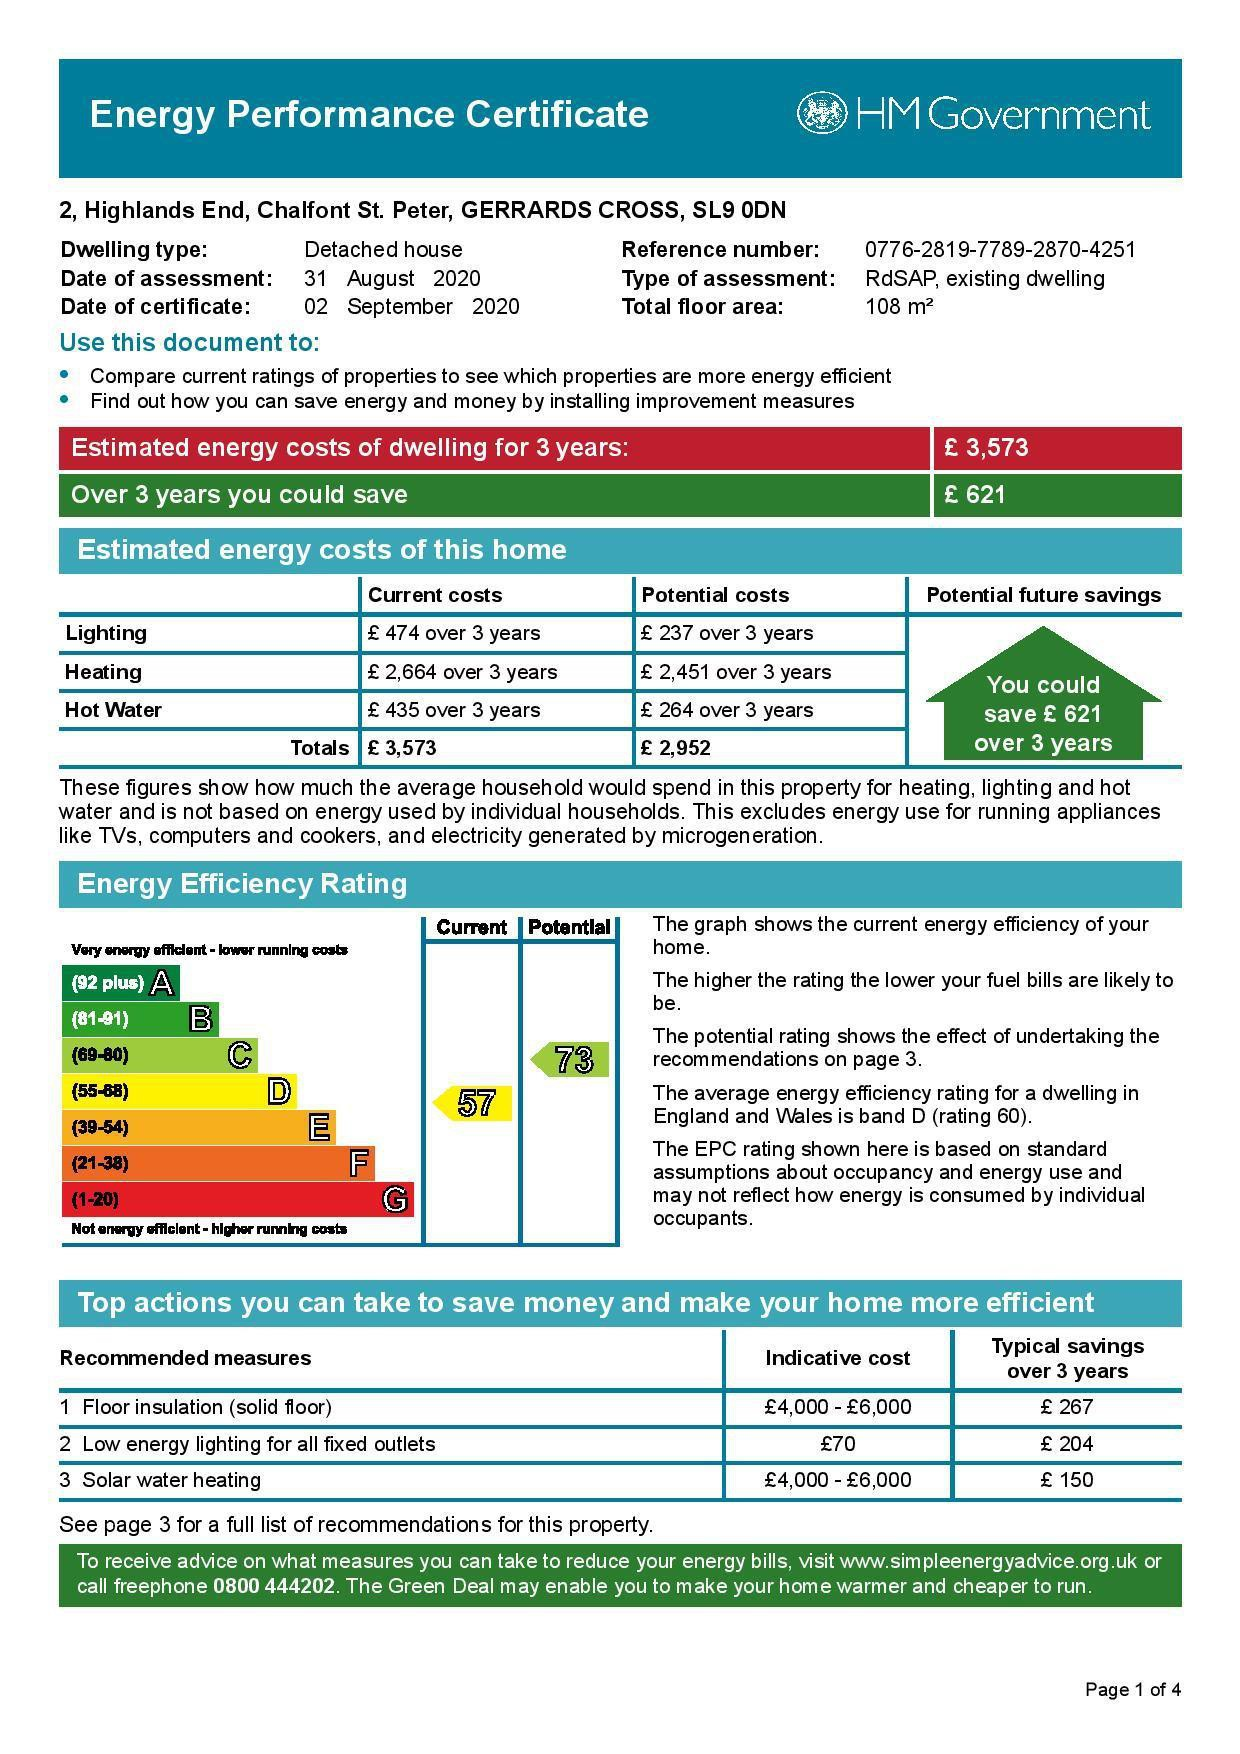 EPC Graph for 2 Highlands End, Chalfont St. Peter, Buckinghamshire, SL9 0DN